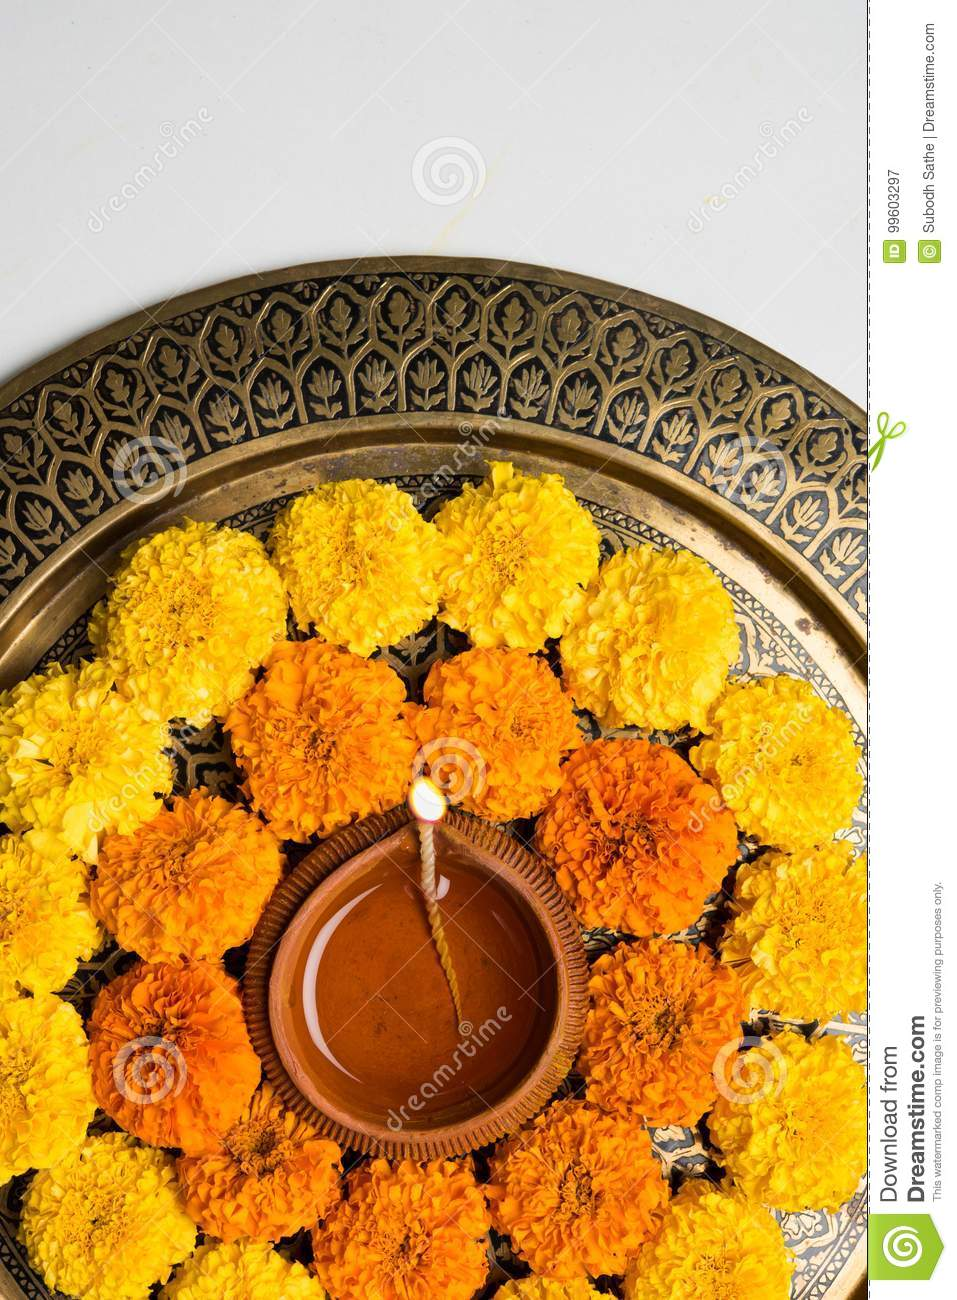 Flower Rangoli For Diwali Or Pongal Or Onam Made Using Marigold Or Zendu Flowers And Red Rose Petals Over White Background With Di Stock Image Image Of Background India 99603297